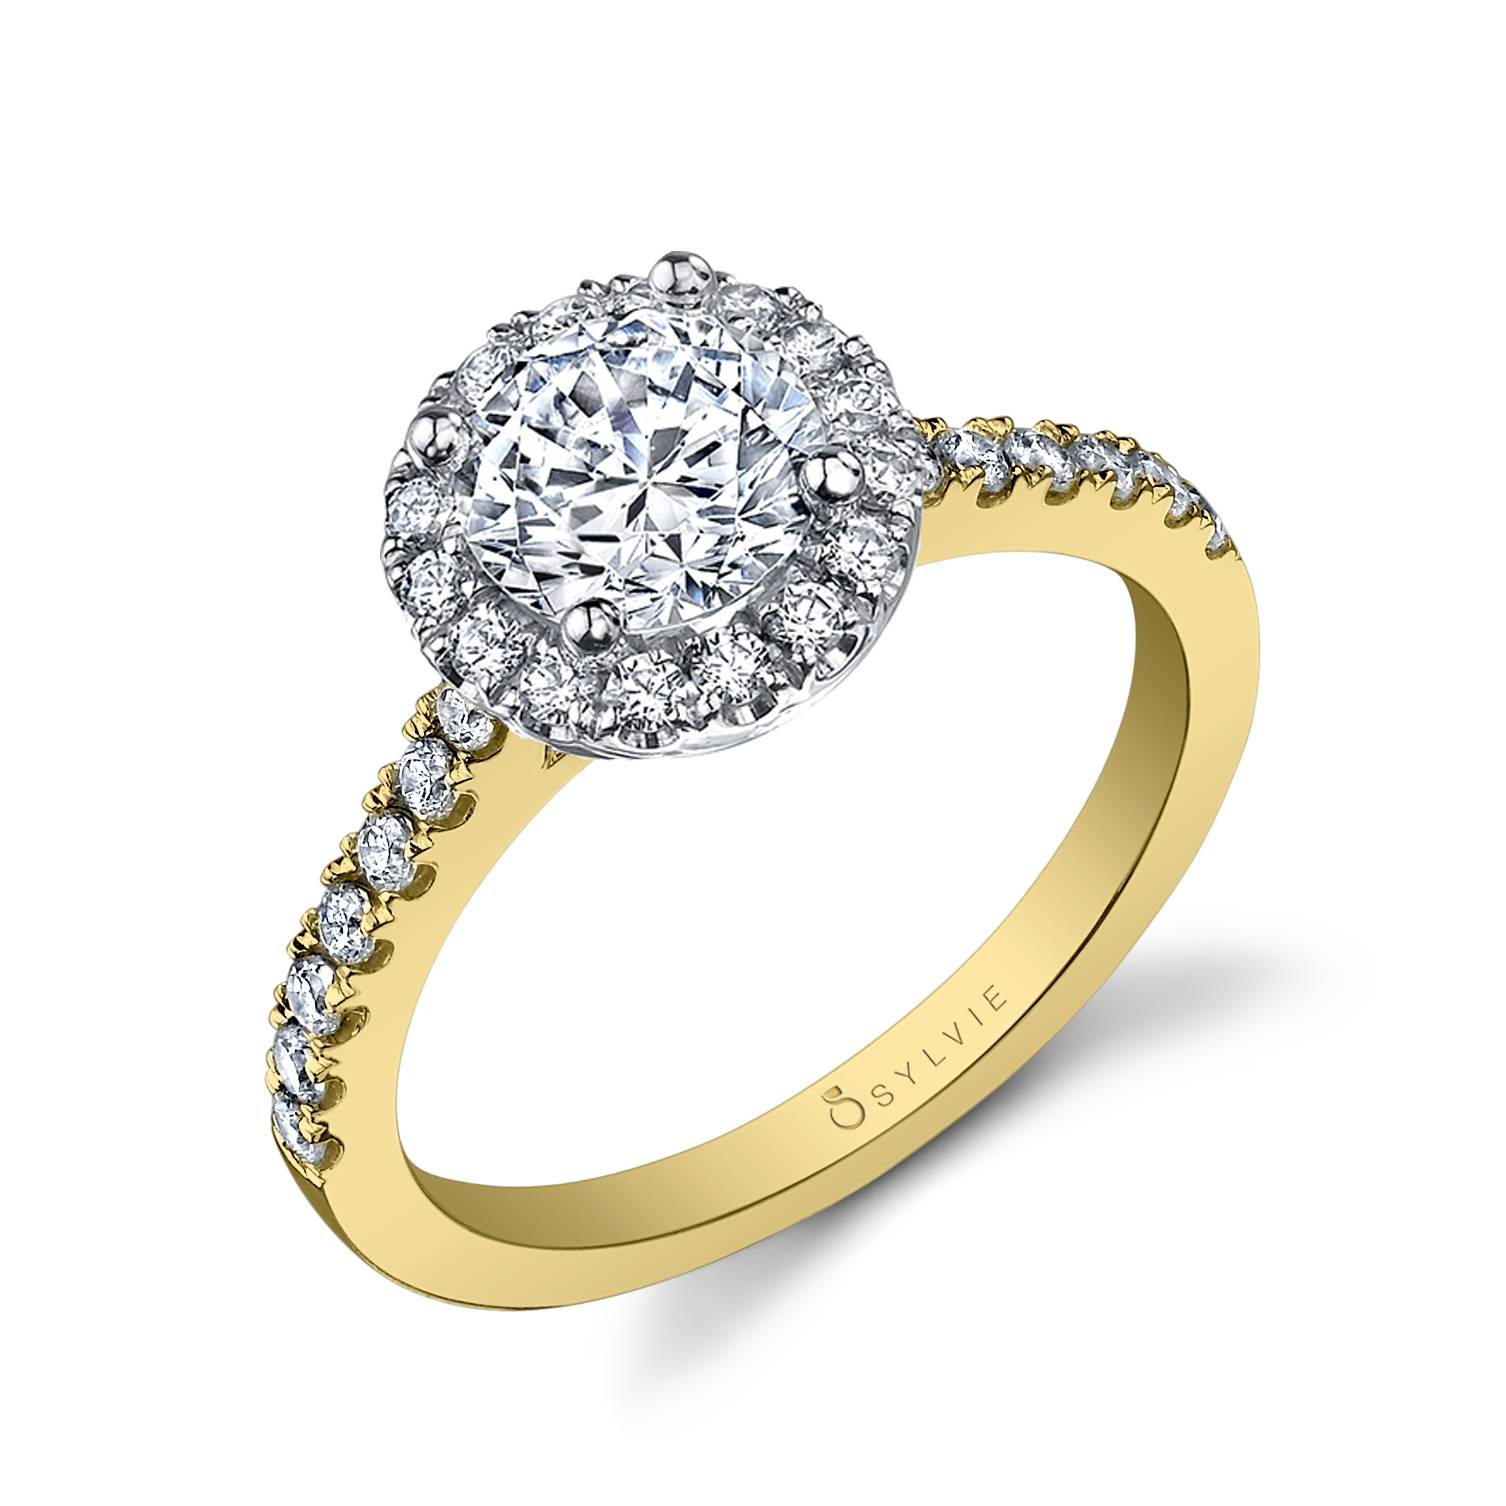 Adrienne – Classic Halo Engagement Ring